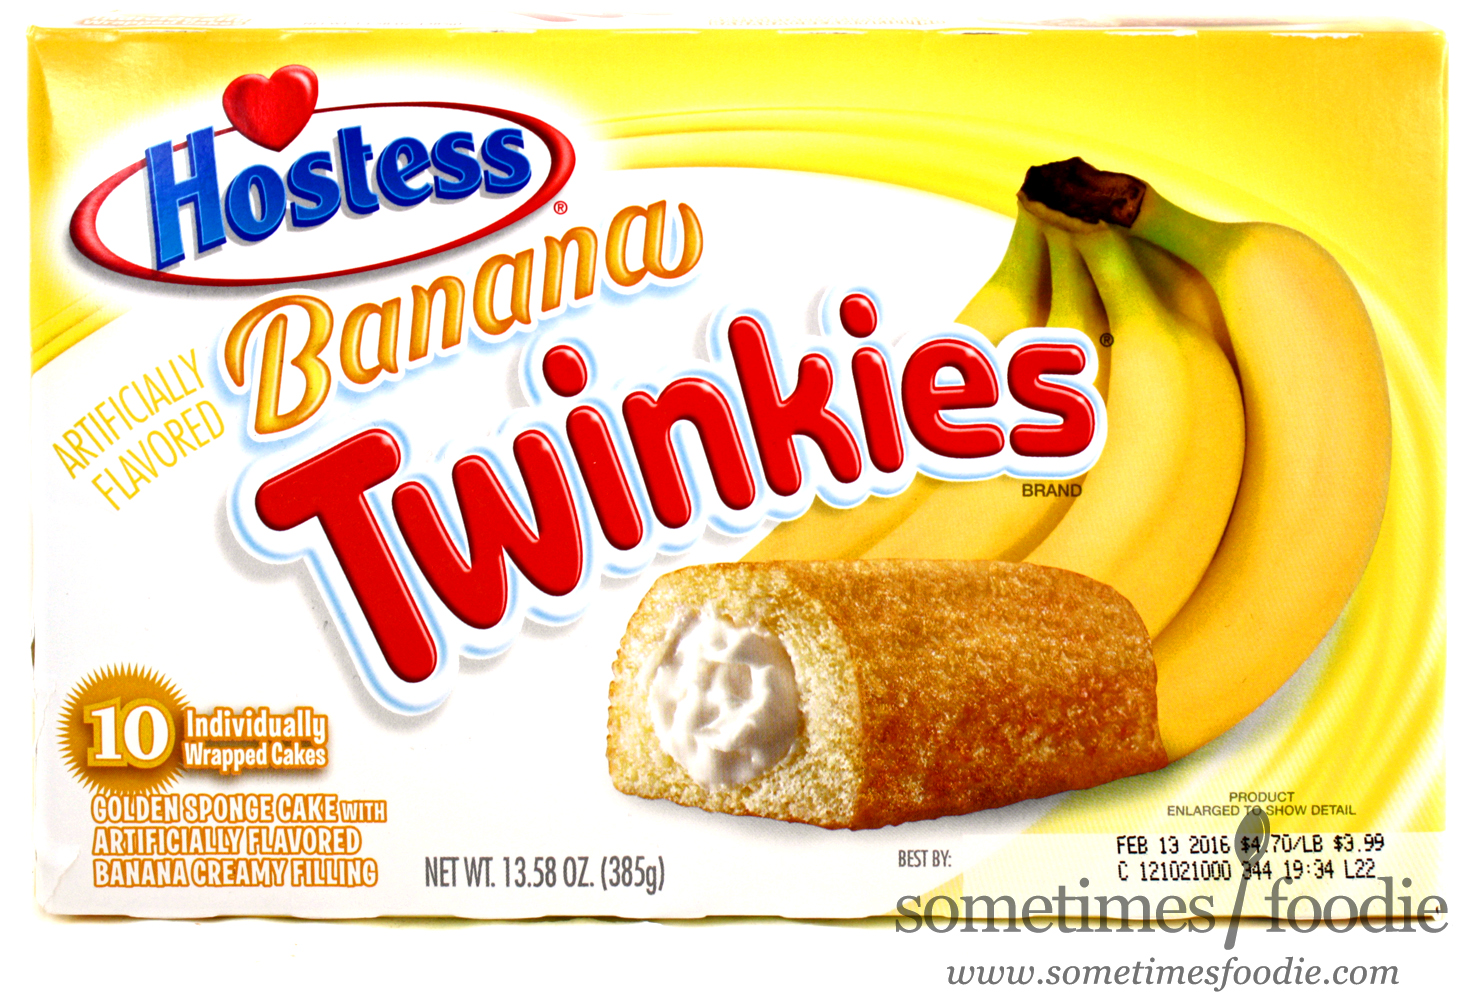 Hostess debuts new Chocolate Twinkies, re-brands Chocodiles